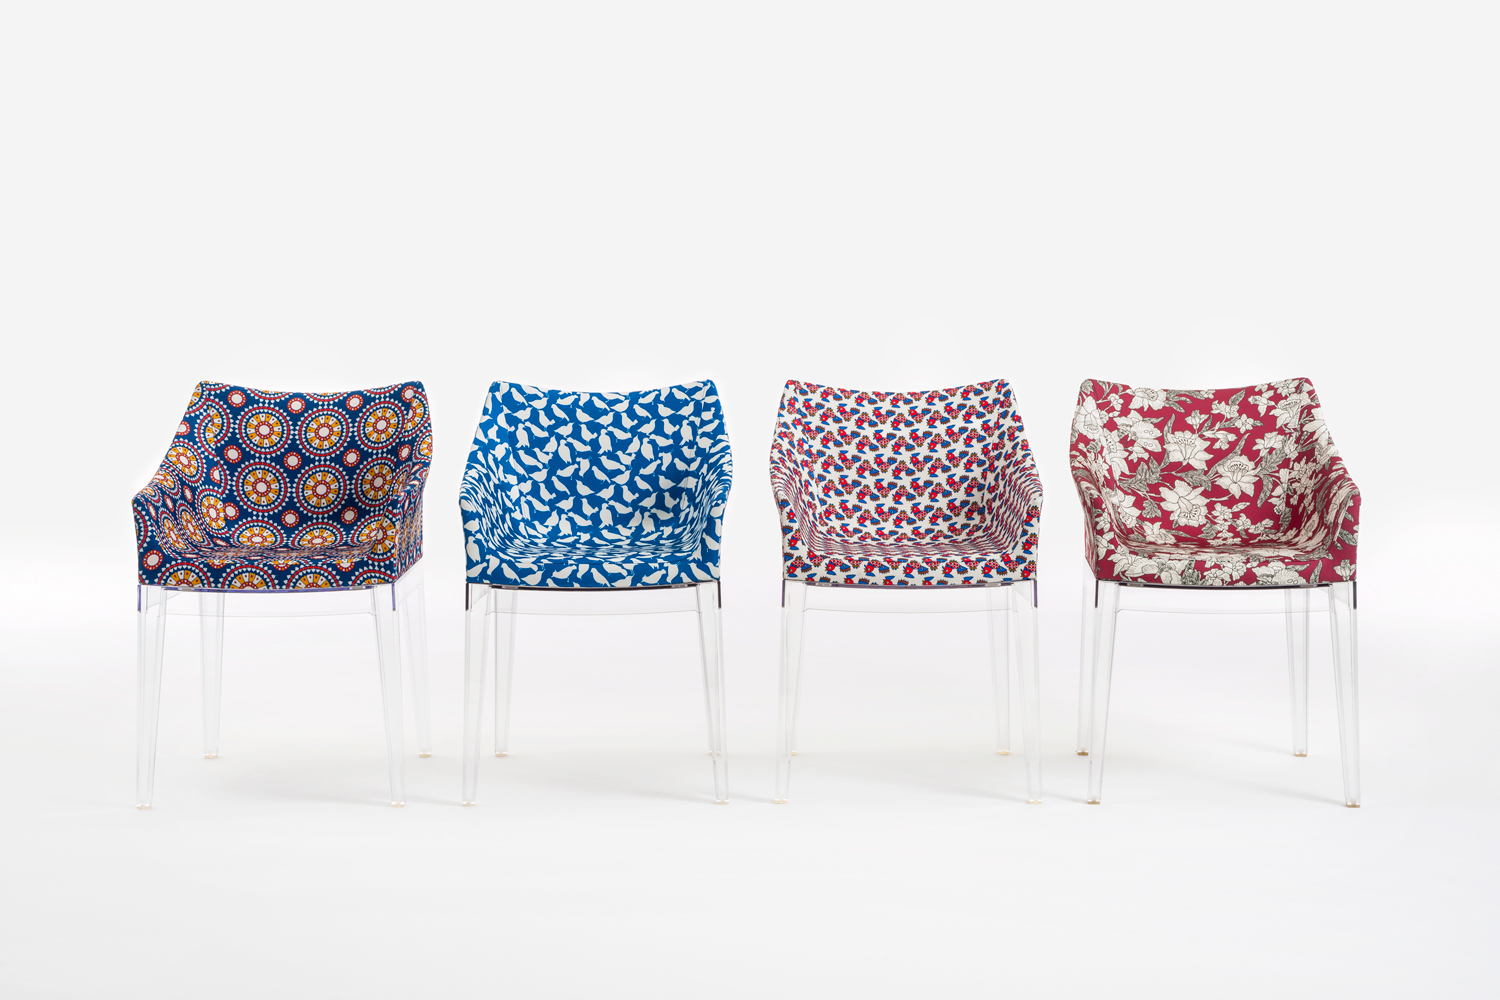 The Madame chair by Philippe Starck is reimagined in four prints – .Ruote, Uccellini Blu, Galletti and Lilium. The Ruote pattern hails from the archives of Zurich-based Abraham silk, the manufacturers behind Dior's New Look collection that blasted Europe with colour after WWII.